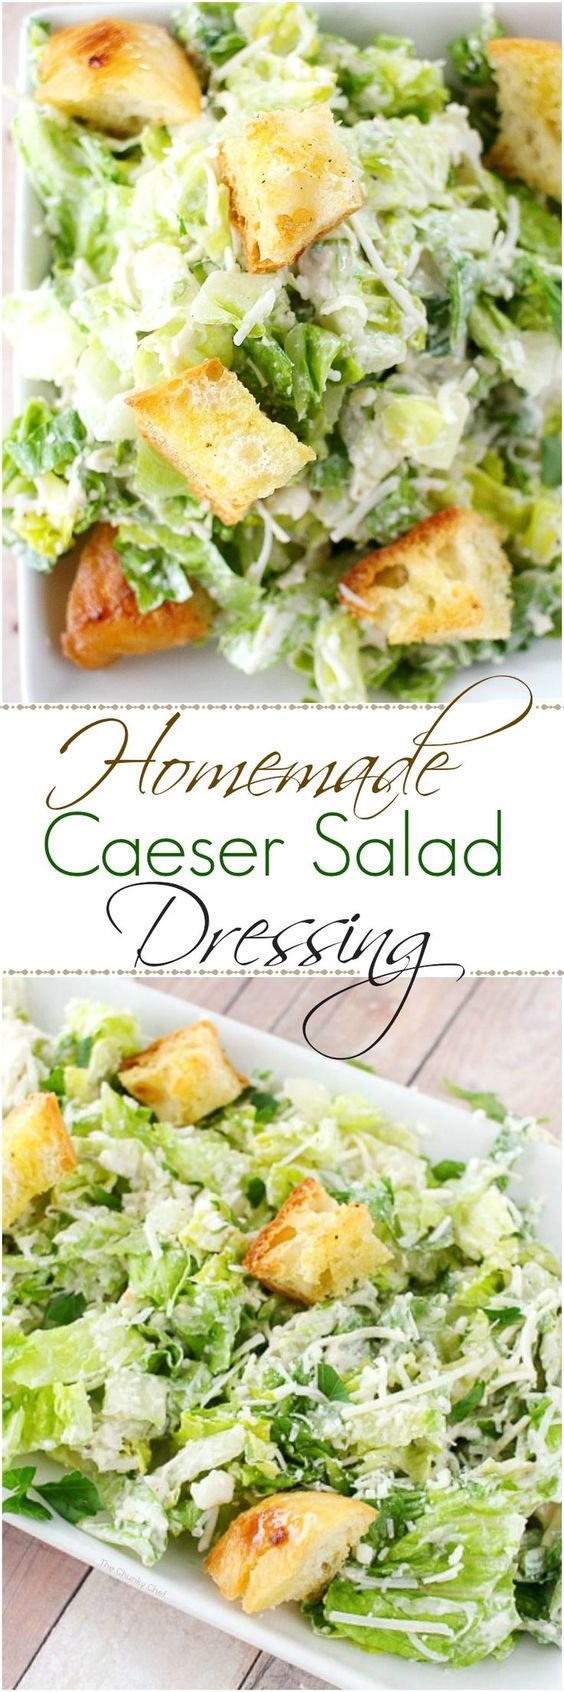 Homemade Caesar Salad Dressing Recipe via The Chunky Chef - Forget about bottled salad dressing, this simple homemade caesar salad dressing is about 1000x better!